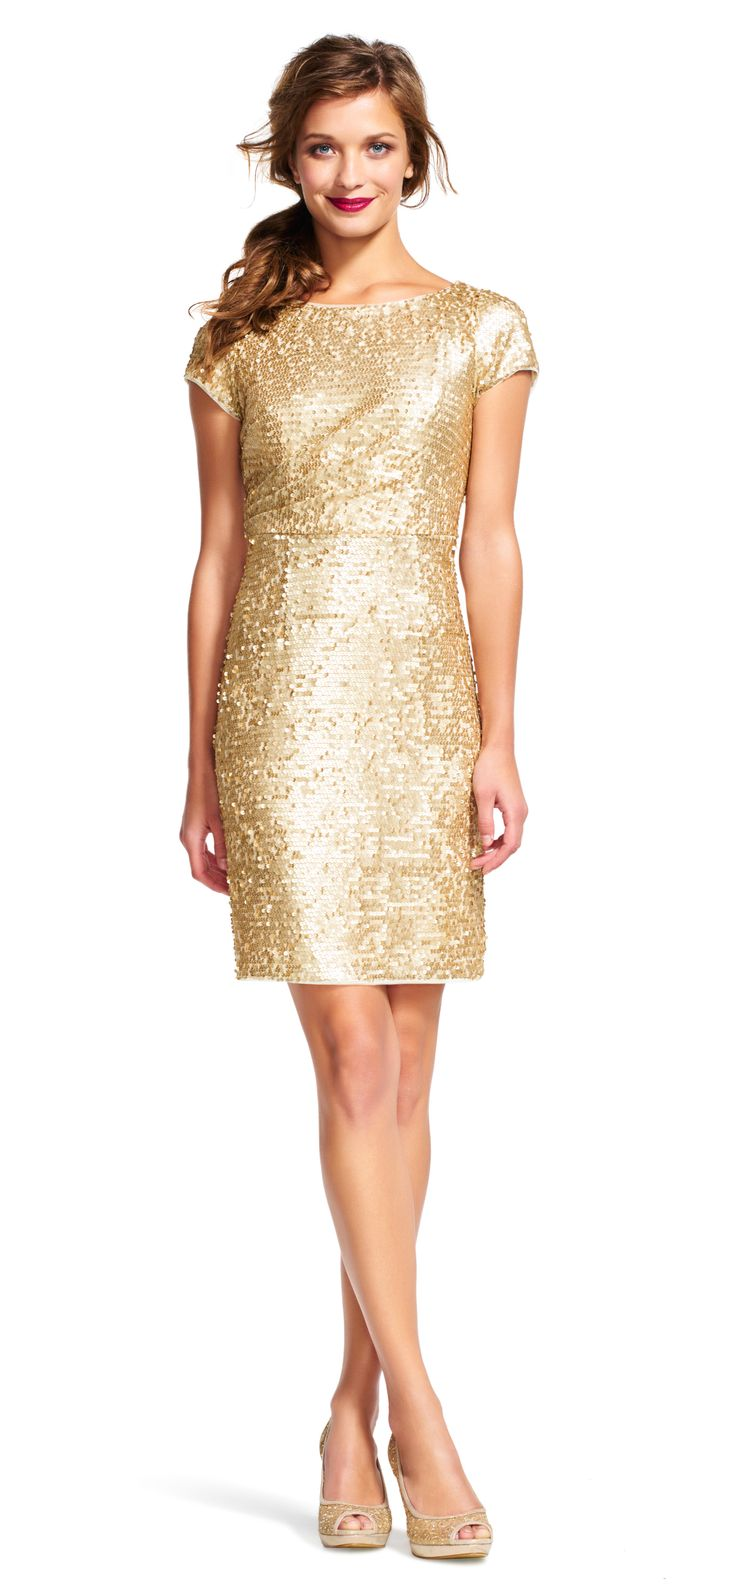 All over sequins is the sparkly thing your dress collection needs. This cocktail dress features a scoop neckline, short sleeves and a sheath silhouette. Simple and glamorous, this party dress is effortless. Paired with a neutral pump and simple earrings, this dress is ready for cocktail hour.